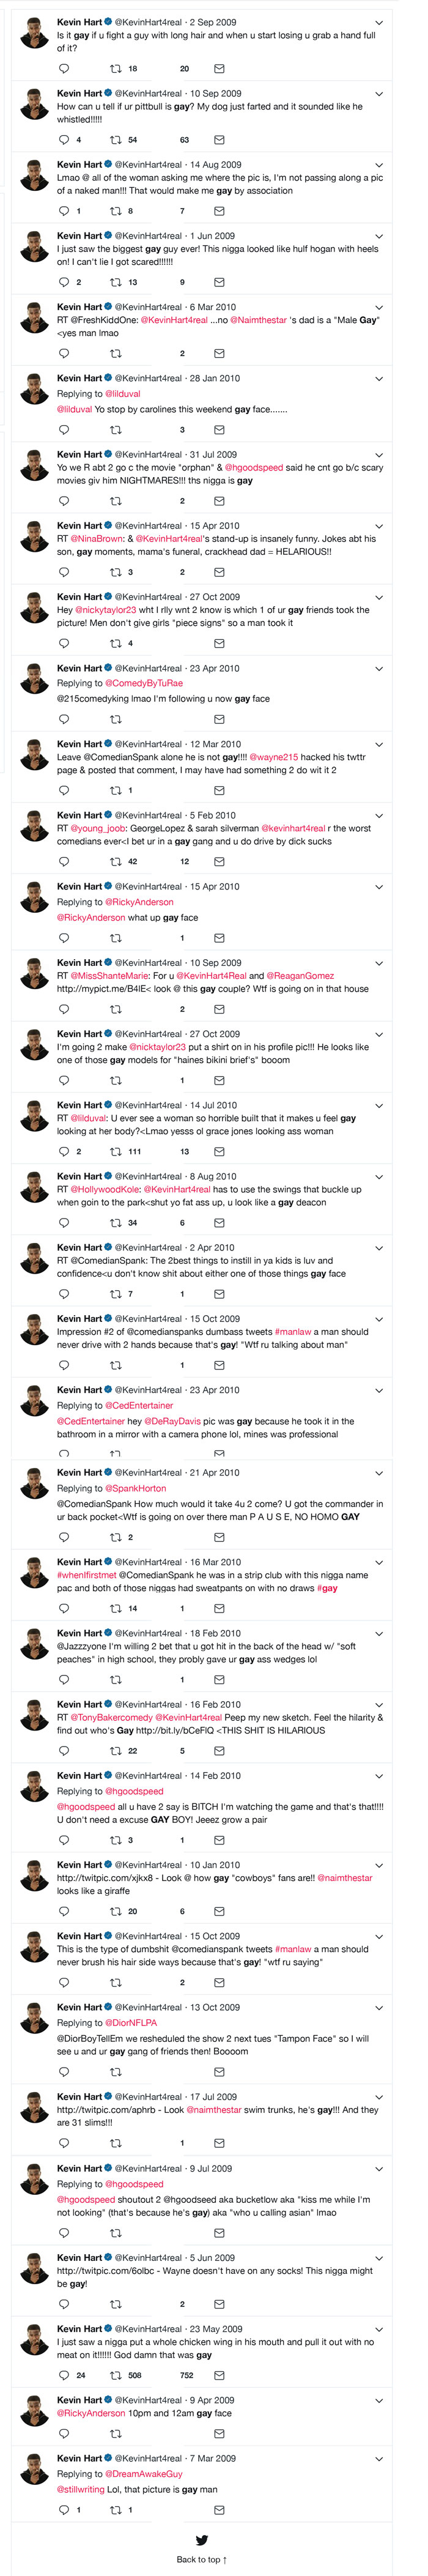 gay-from-KevinHart4Real---Twitter-Search-1.jpg